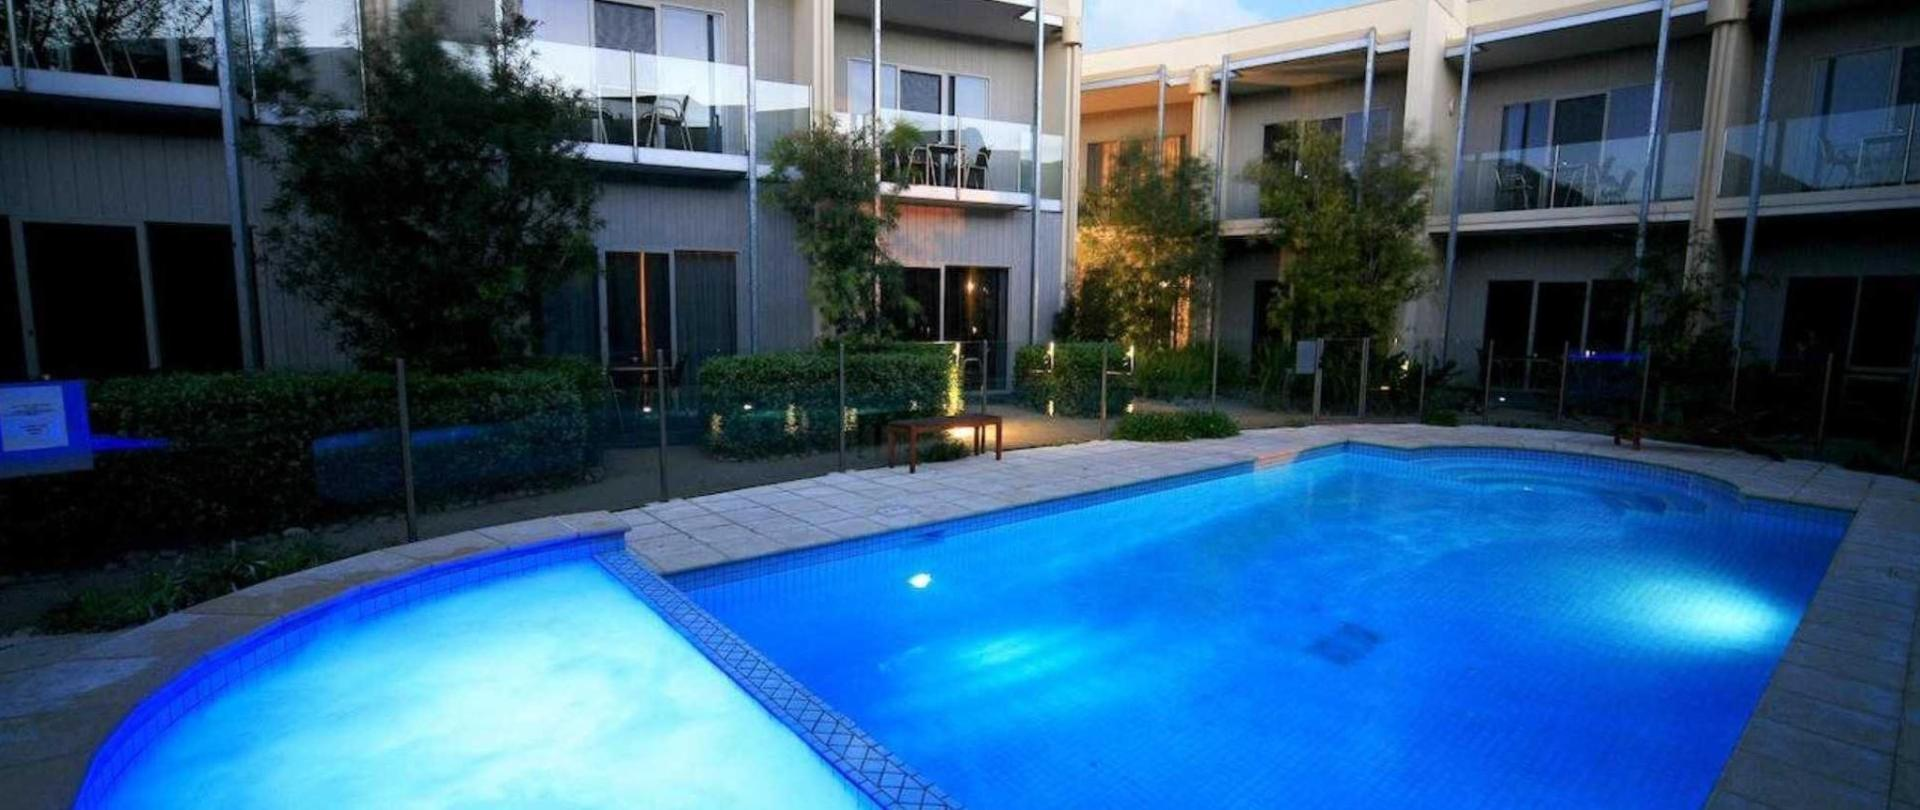 Poolside suites with swimming pool at night.jpg